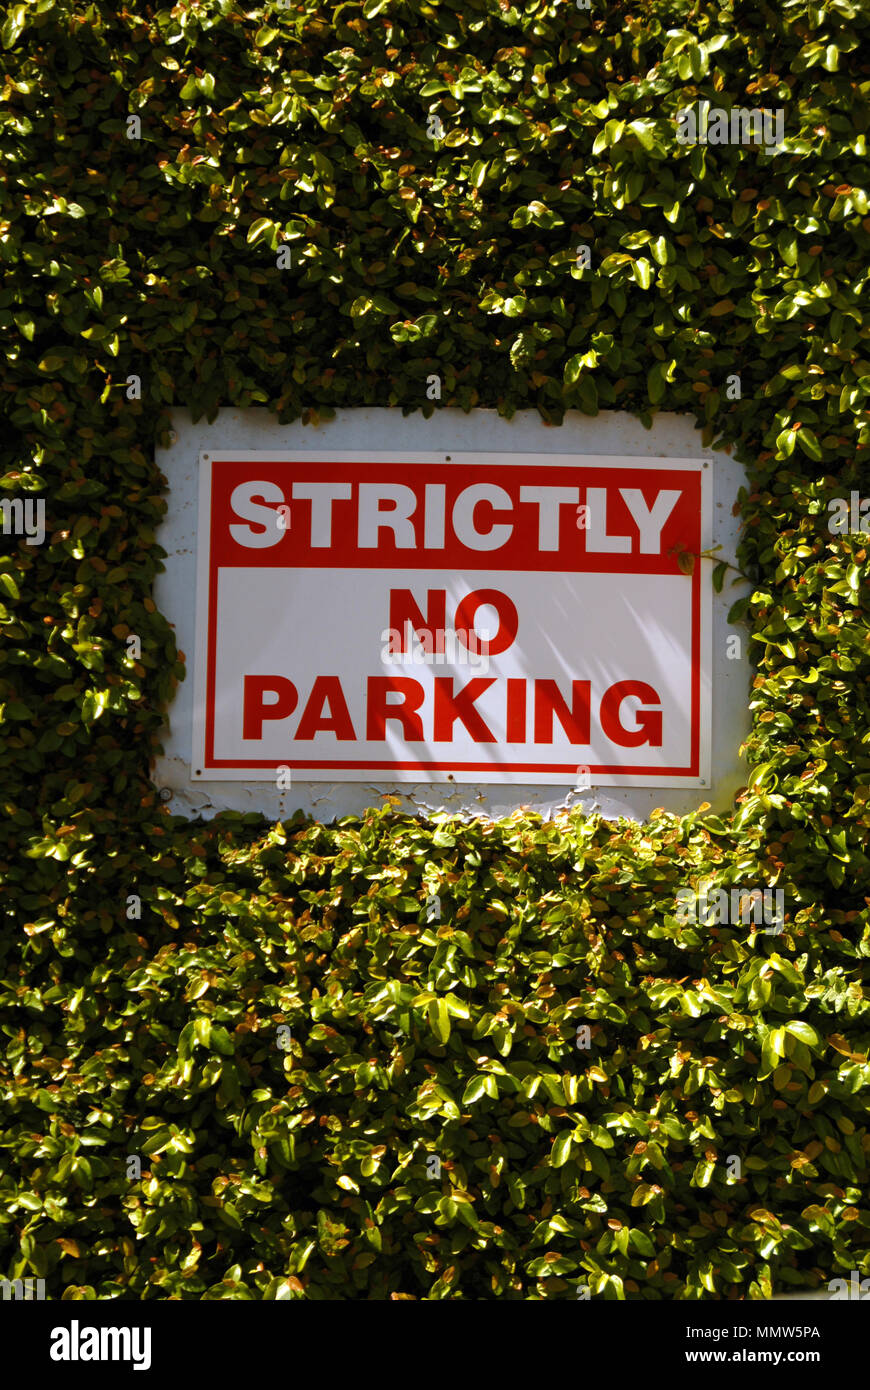 strictly no parking sign almost lost in a hedge - Stock Image